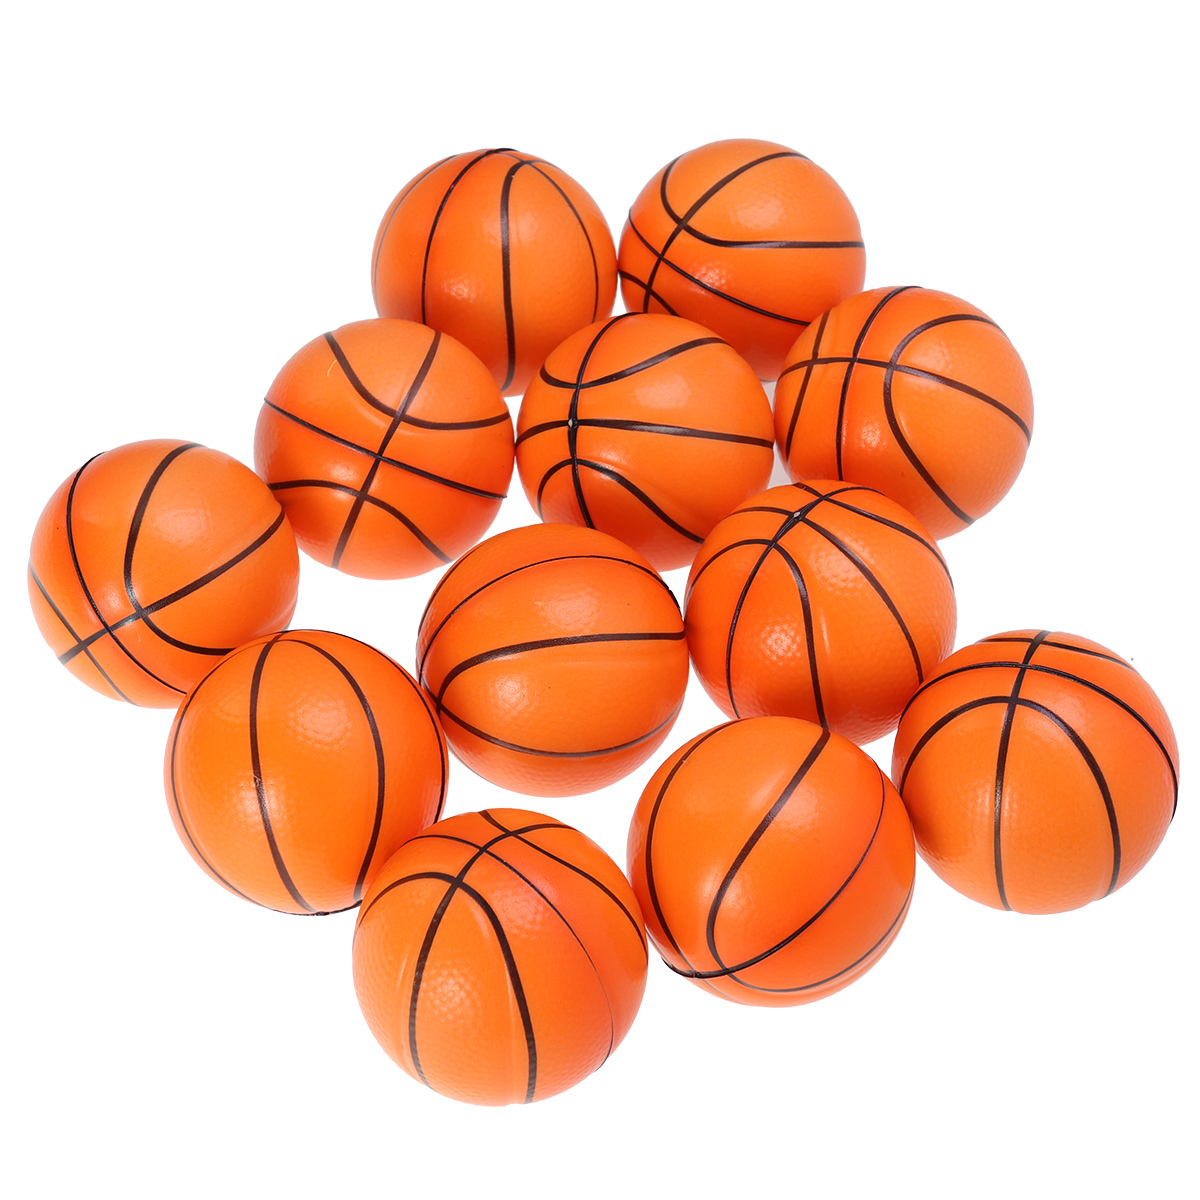 10PCS Mini Sport Balls Squeeze Foam Basketballs Stress Balls Stress Relief Toys For Kids Party Relaxation